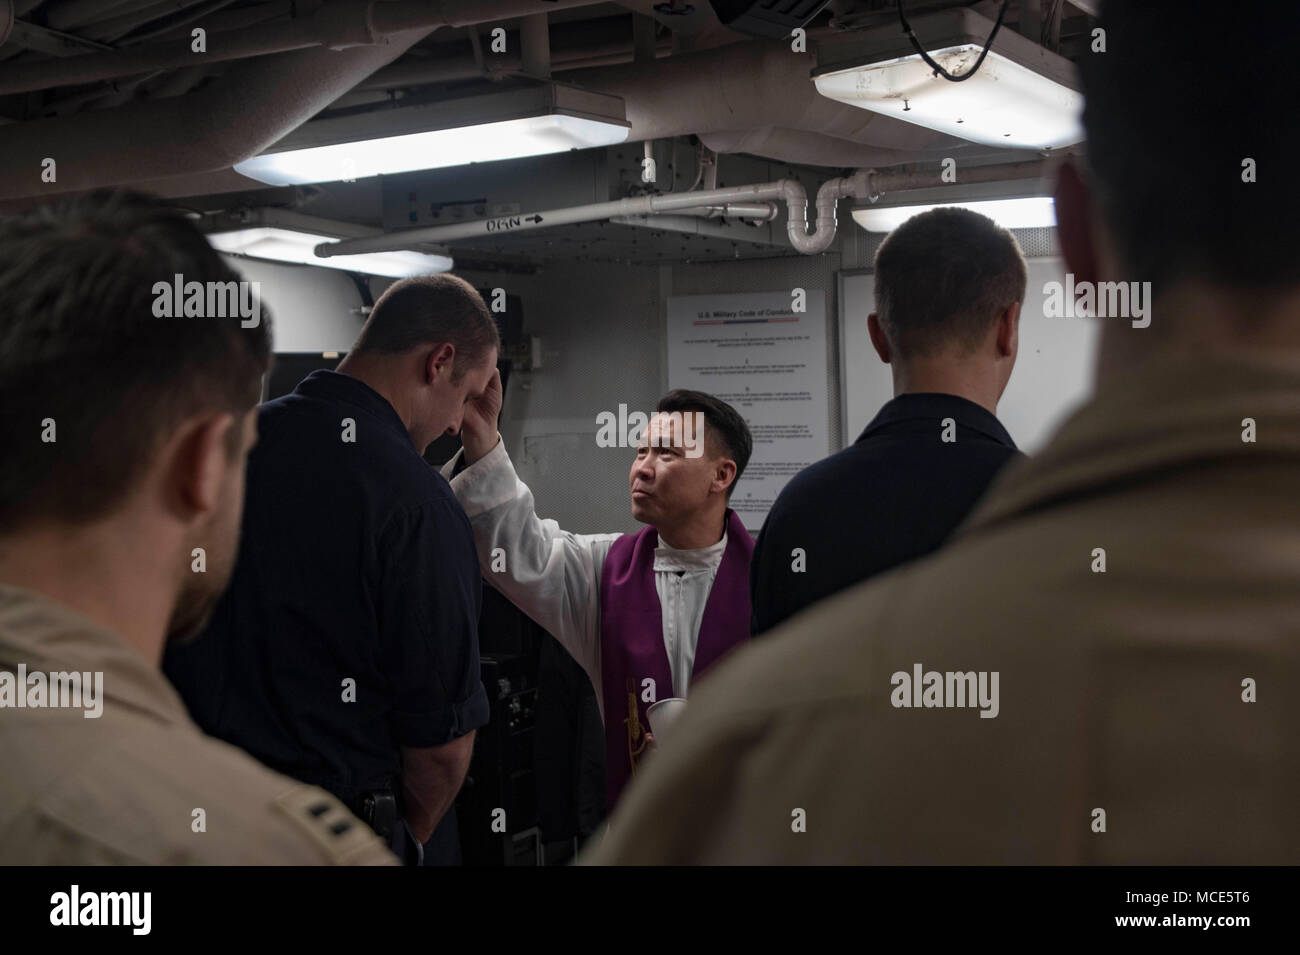 180214-N-DO281-1234  ARABIAN GULF (Feb. 14, 2018) Lt. Long Nguyen, a chaplain assigned to the aircraft carrier USS Theodore Roosevelt (CVN 71), blesses Interior Communications Electrician 1st Class Travis Coakley during an Ash Wednesday service aboard the guided-missile cruiser USS Monterey (CG 61). Monterey is deployed to the U.S. 5th Fleet area of operations in support of maritime security operations to reassure allies and partners and preserve the freedom of navigation and the free flow of commerce in the region. (U.S. Navy photo by Mass Communication Specialist Seaman Trey Fowler/Released) Stock Photo